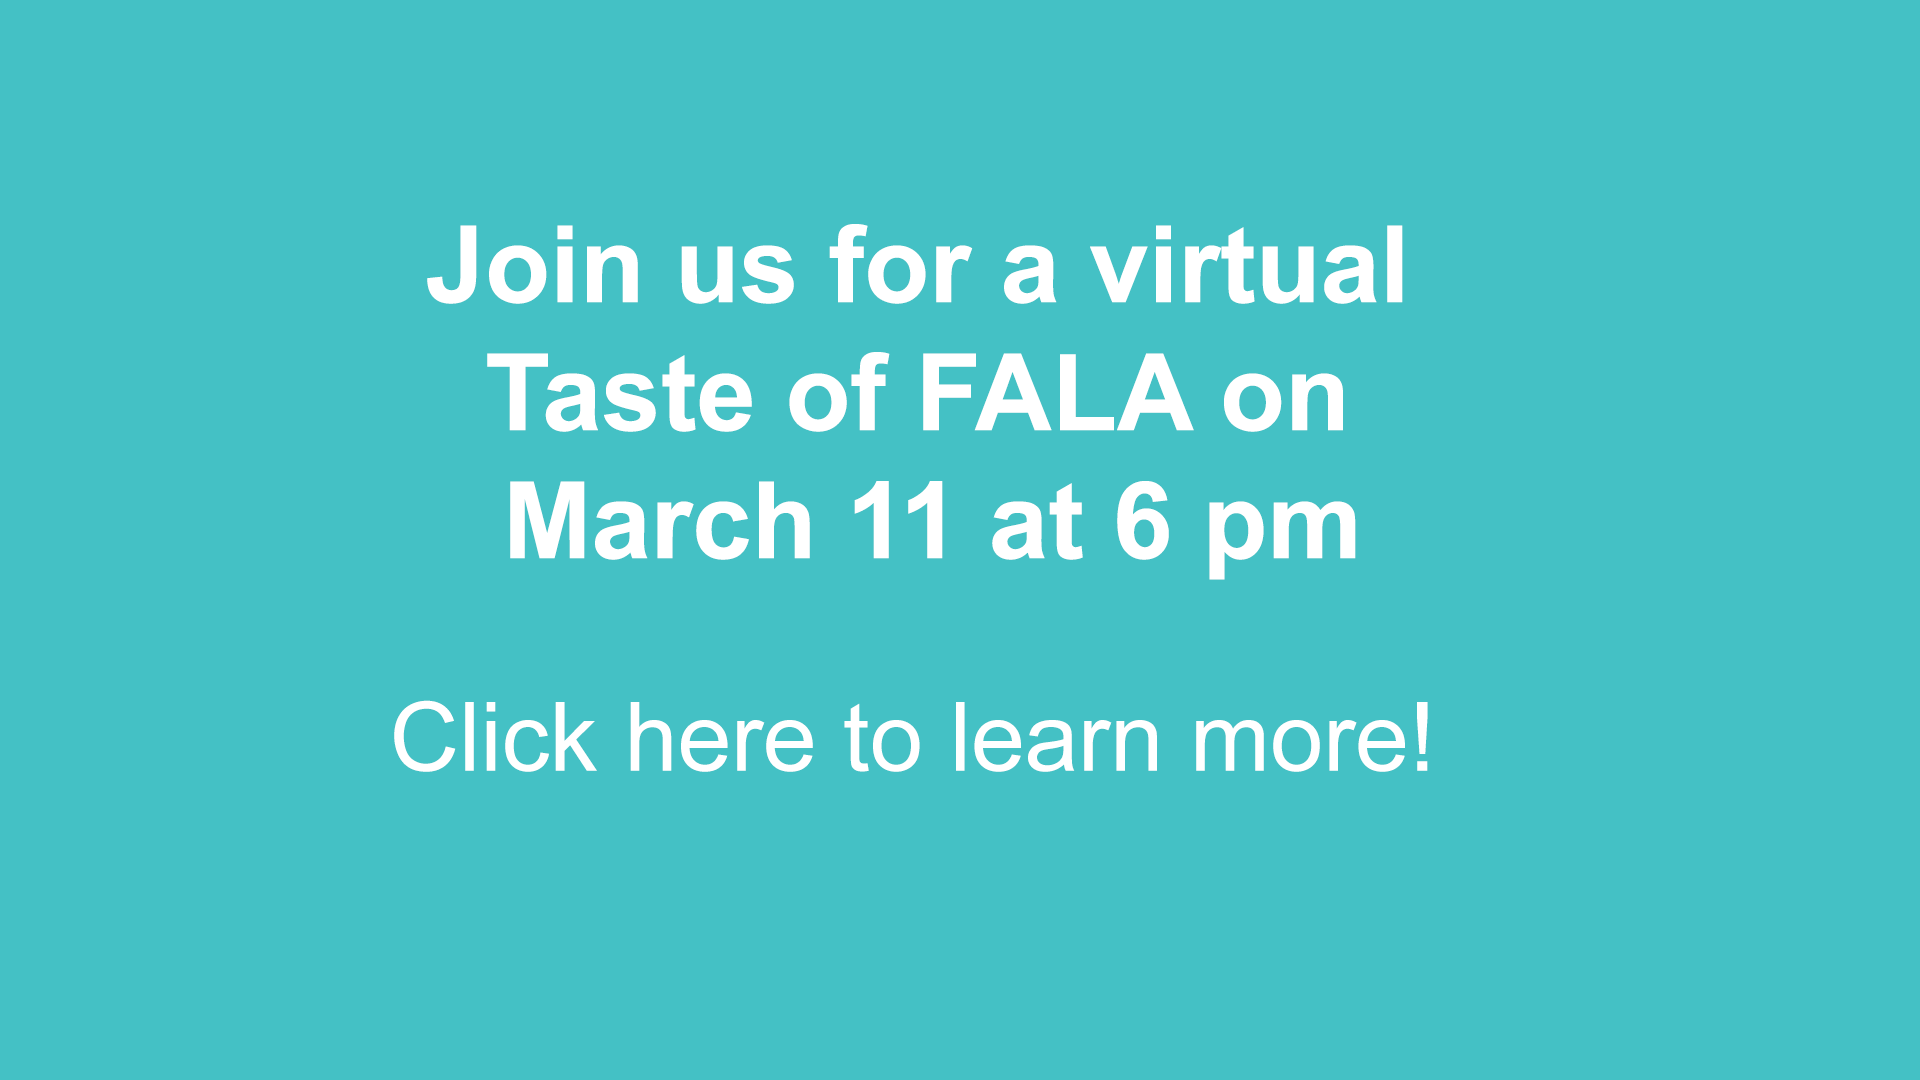 Learn about FALA March 11, click to learn more.